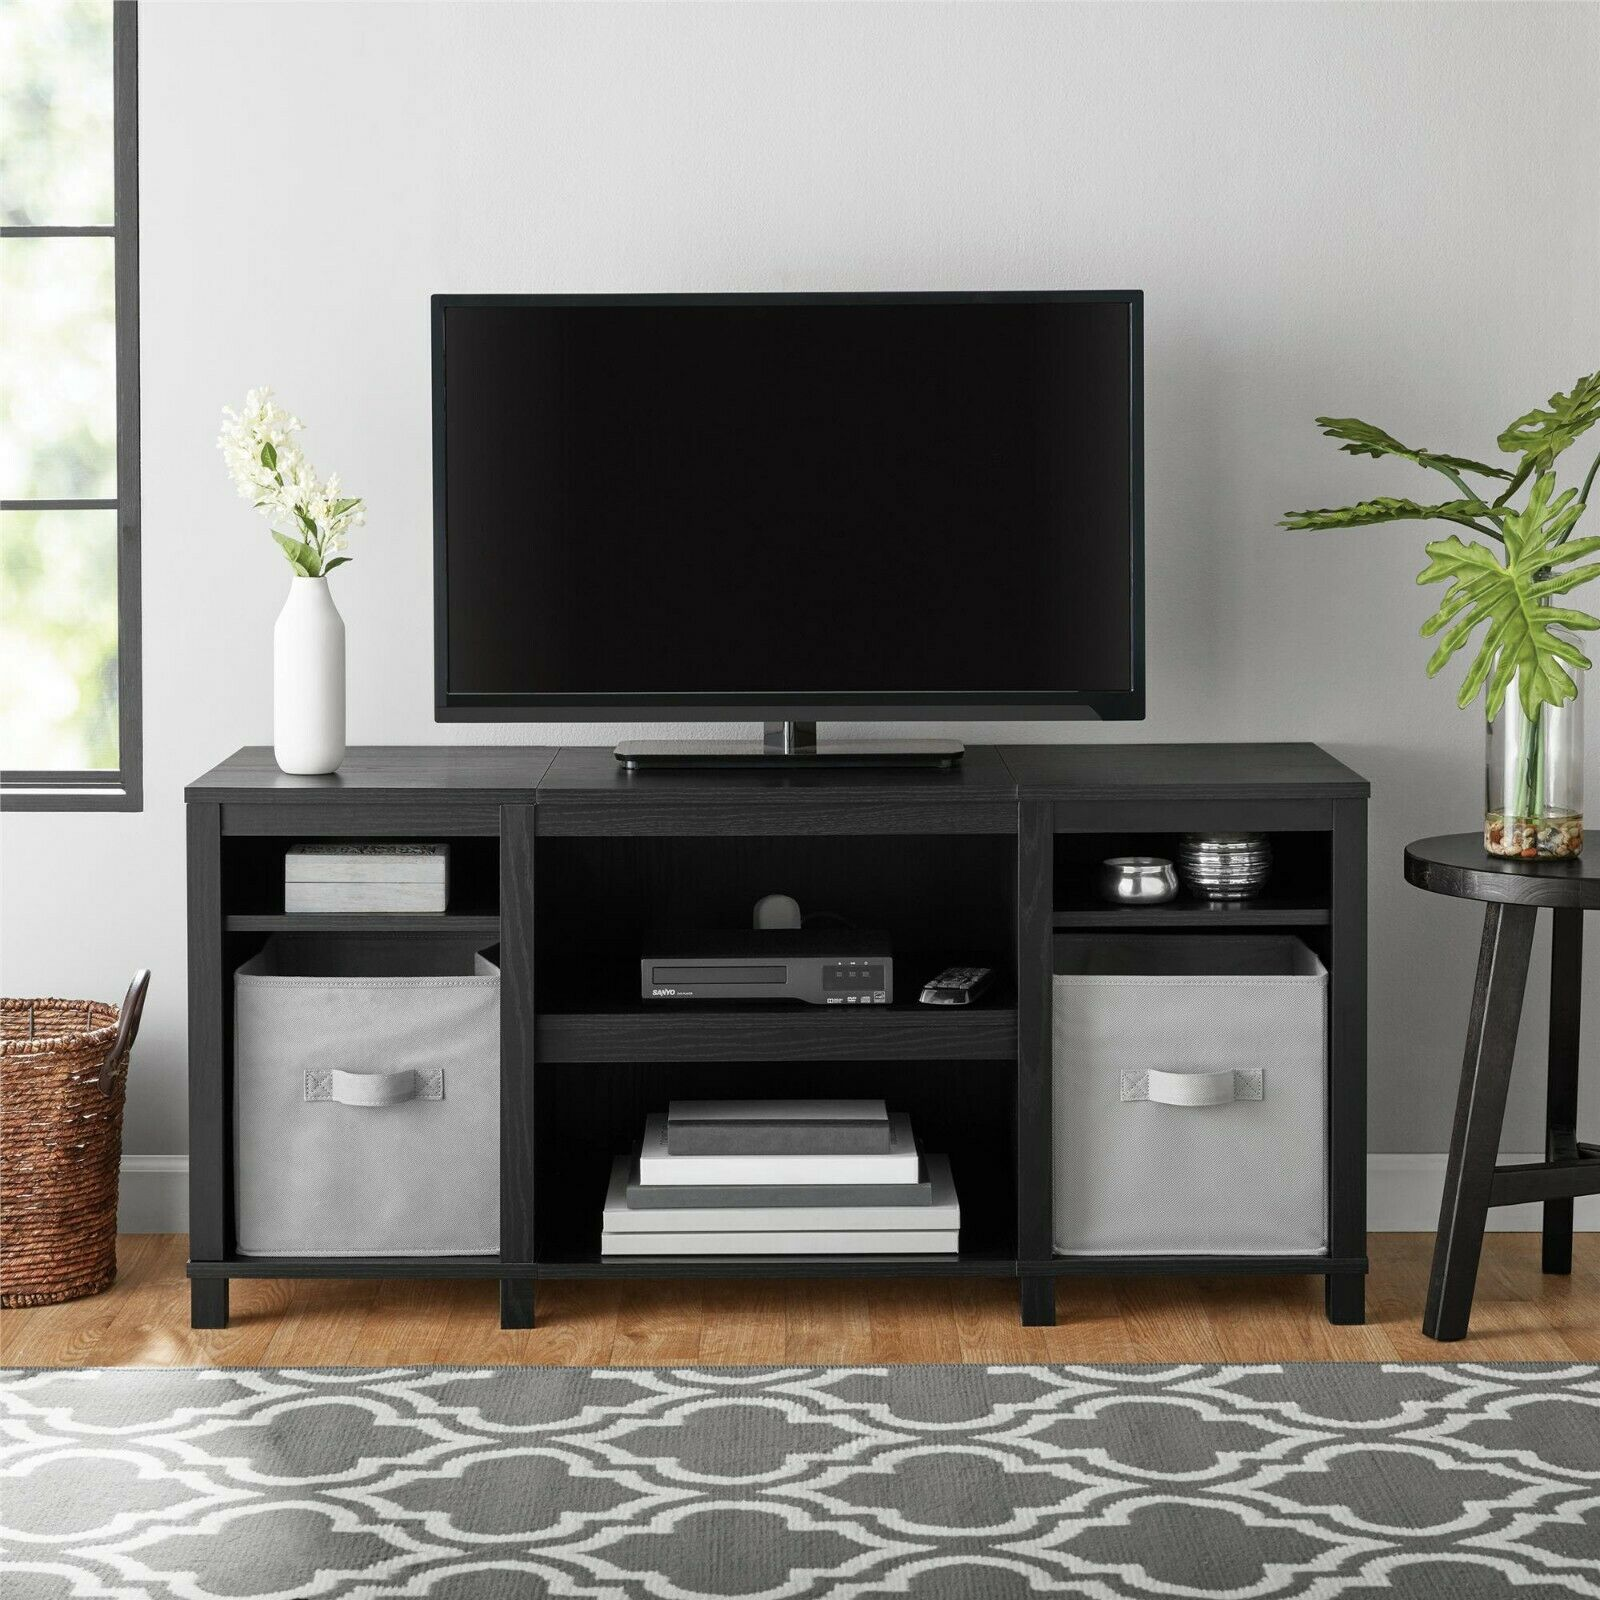 Mainstays Parsons Wood TV Stand for up to 50 inch TVs - Blac